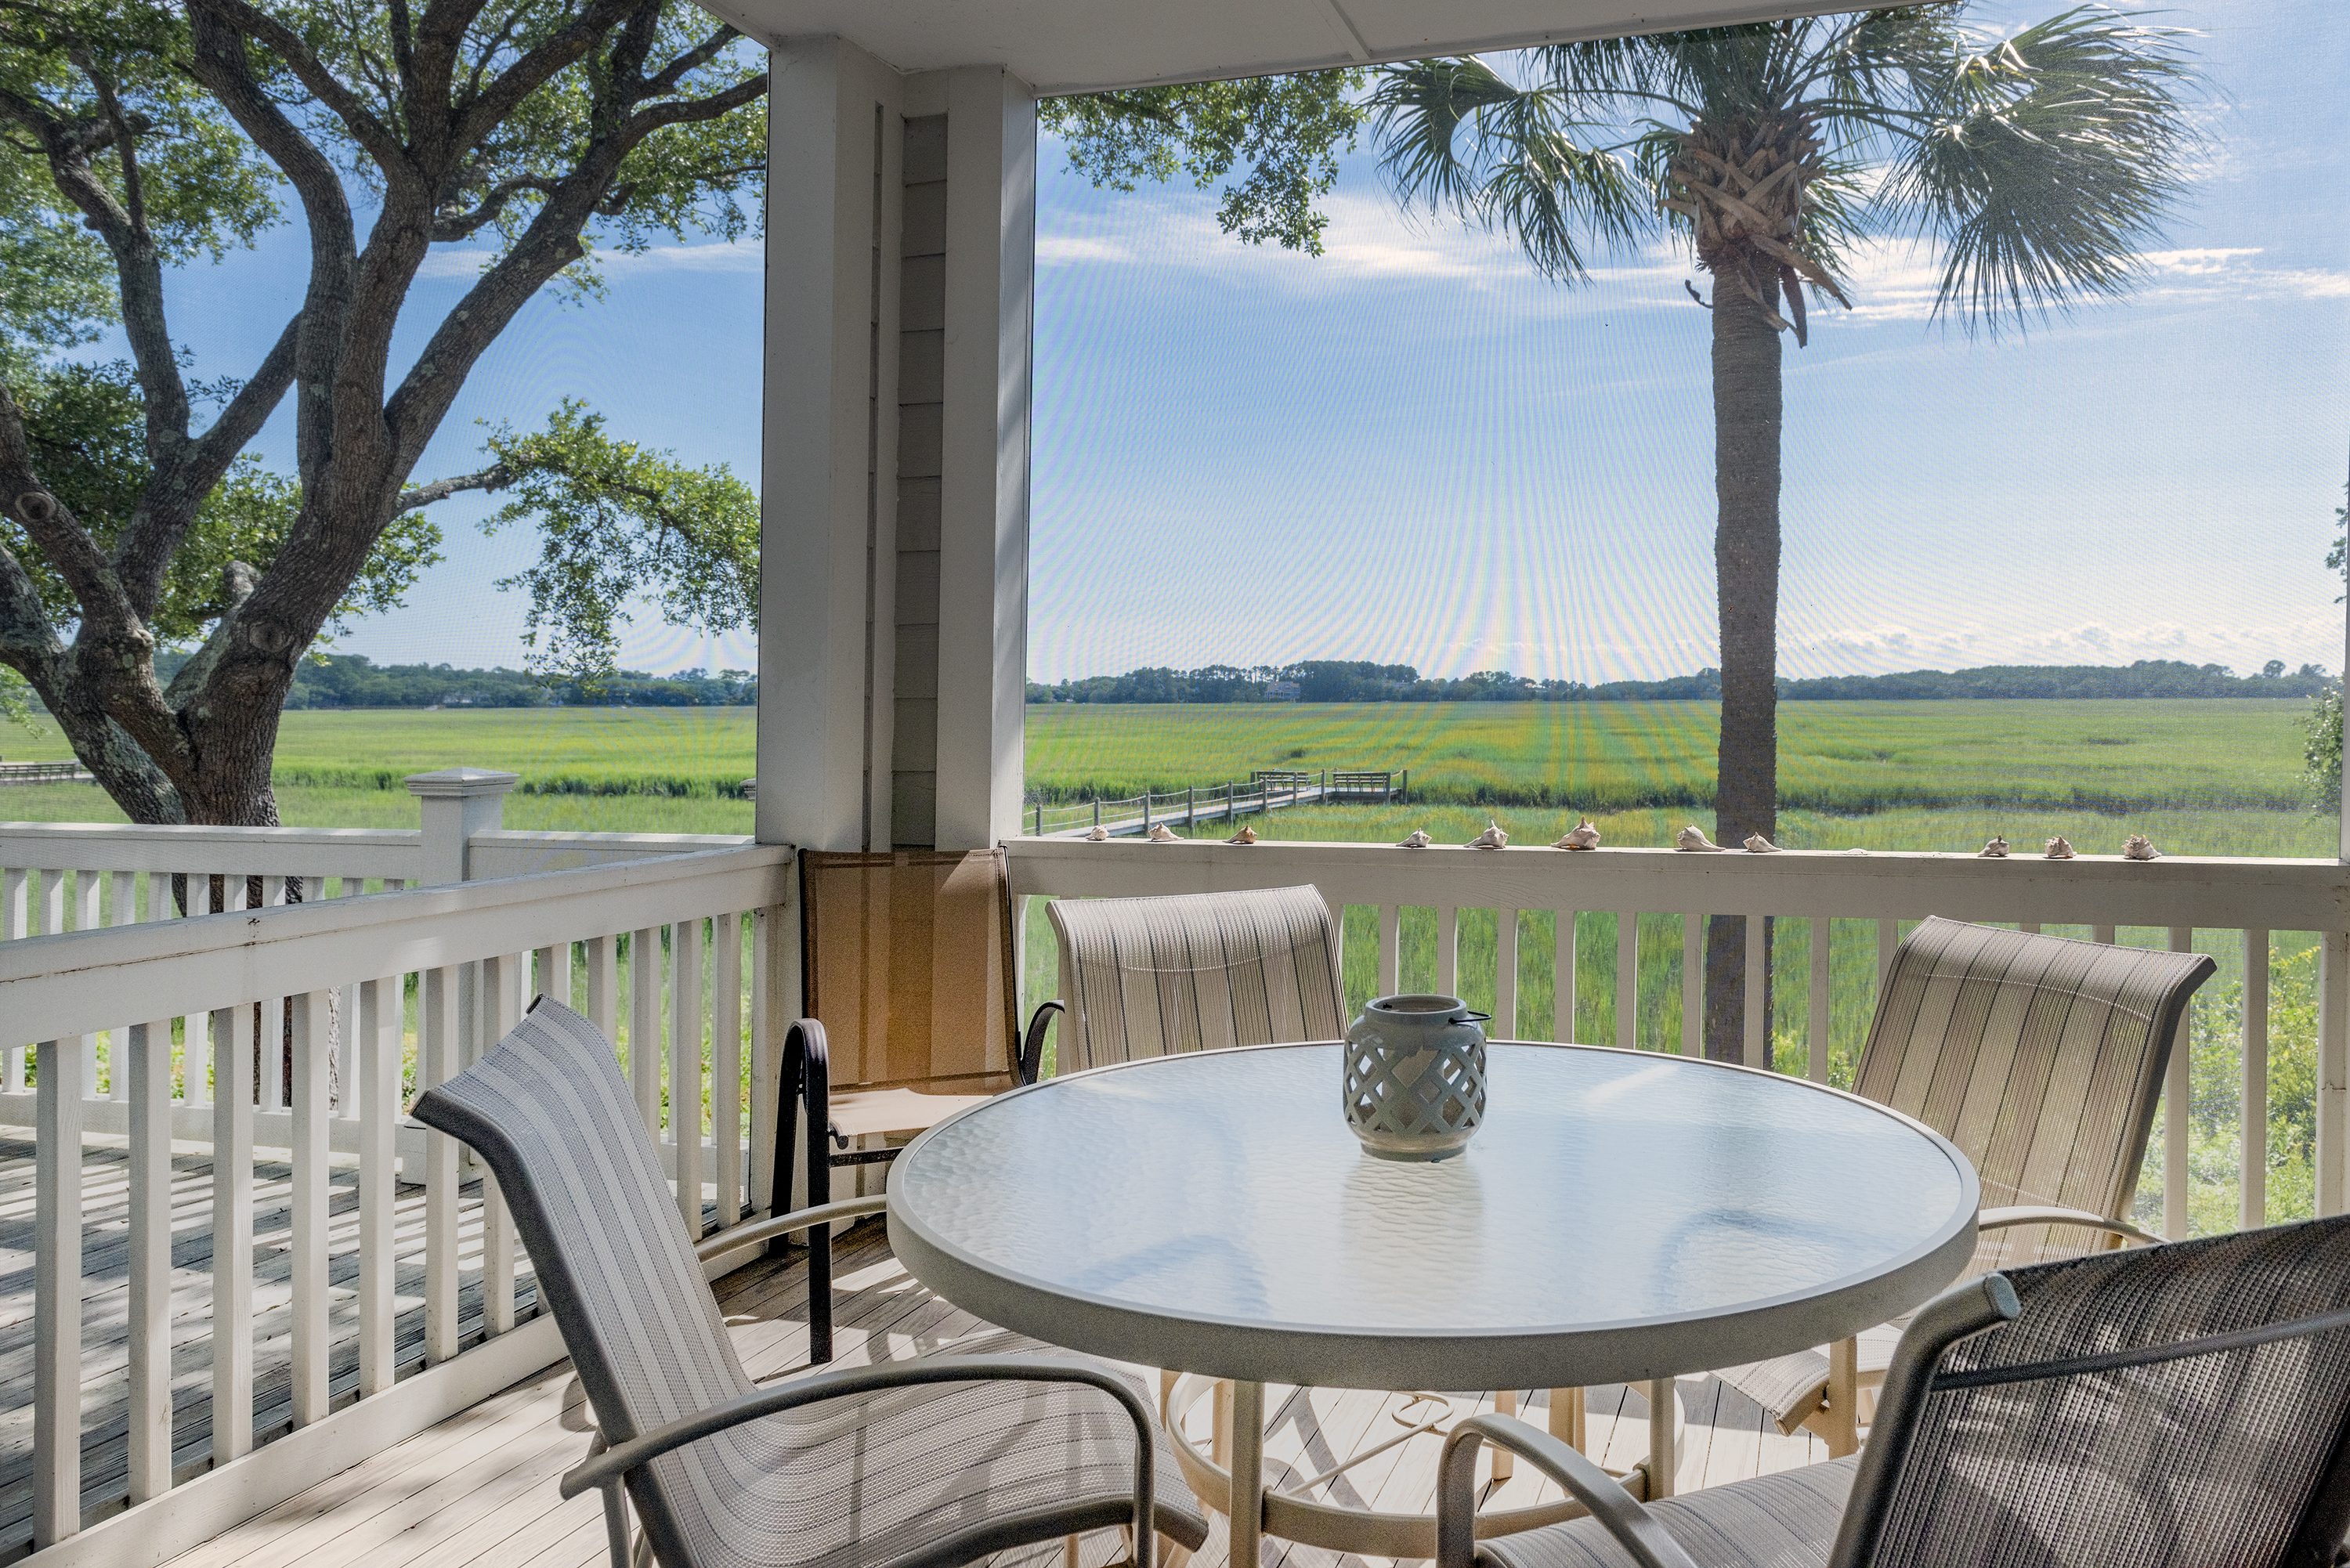 Fabulous views from the screened porch!